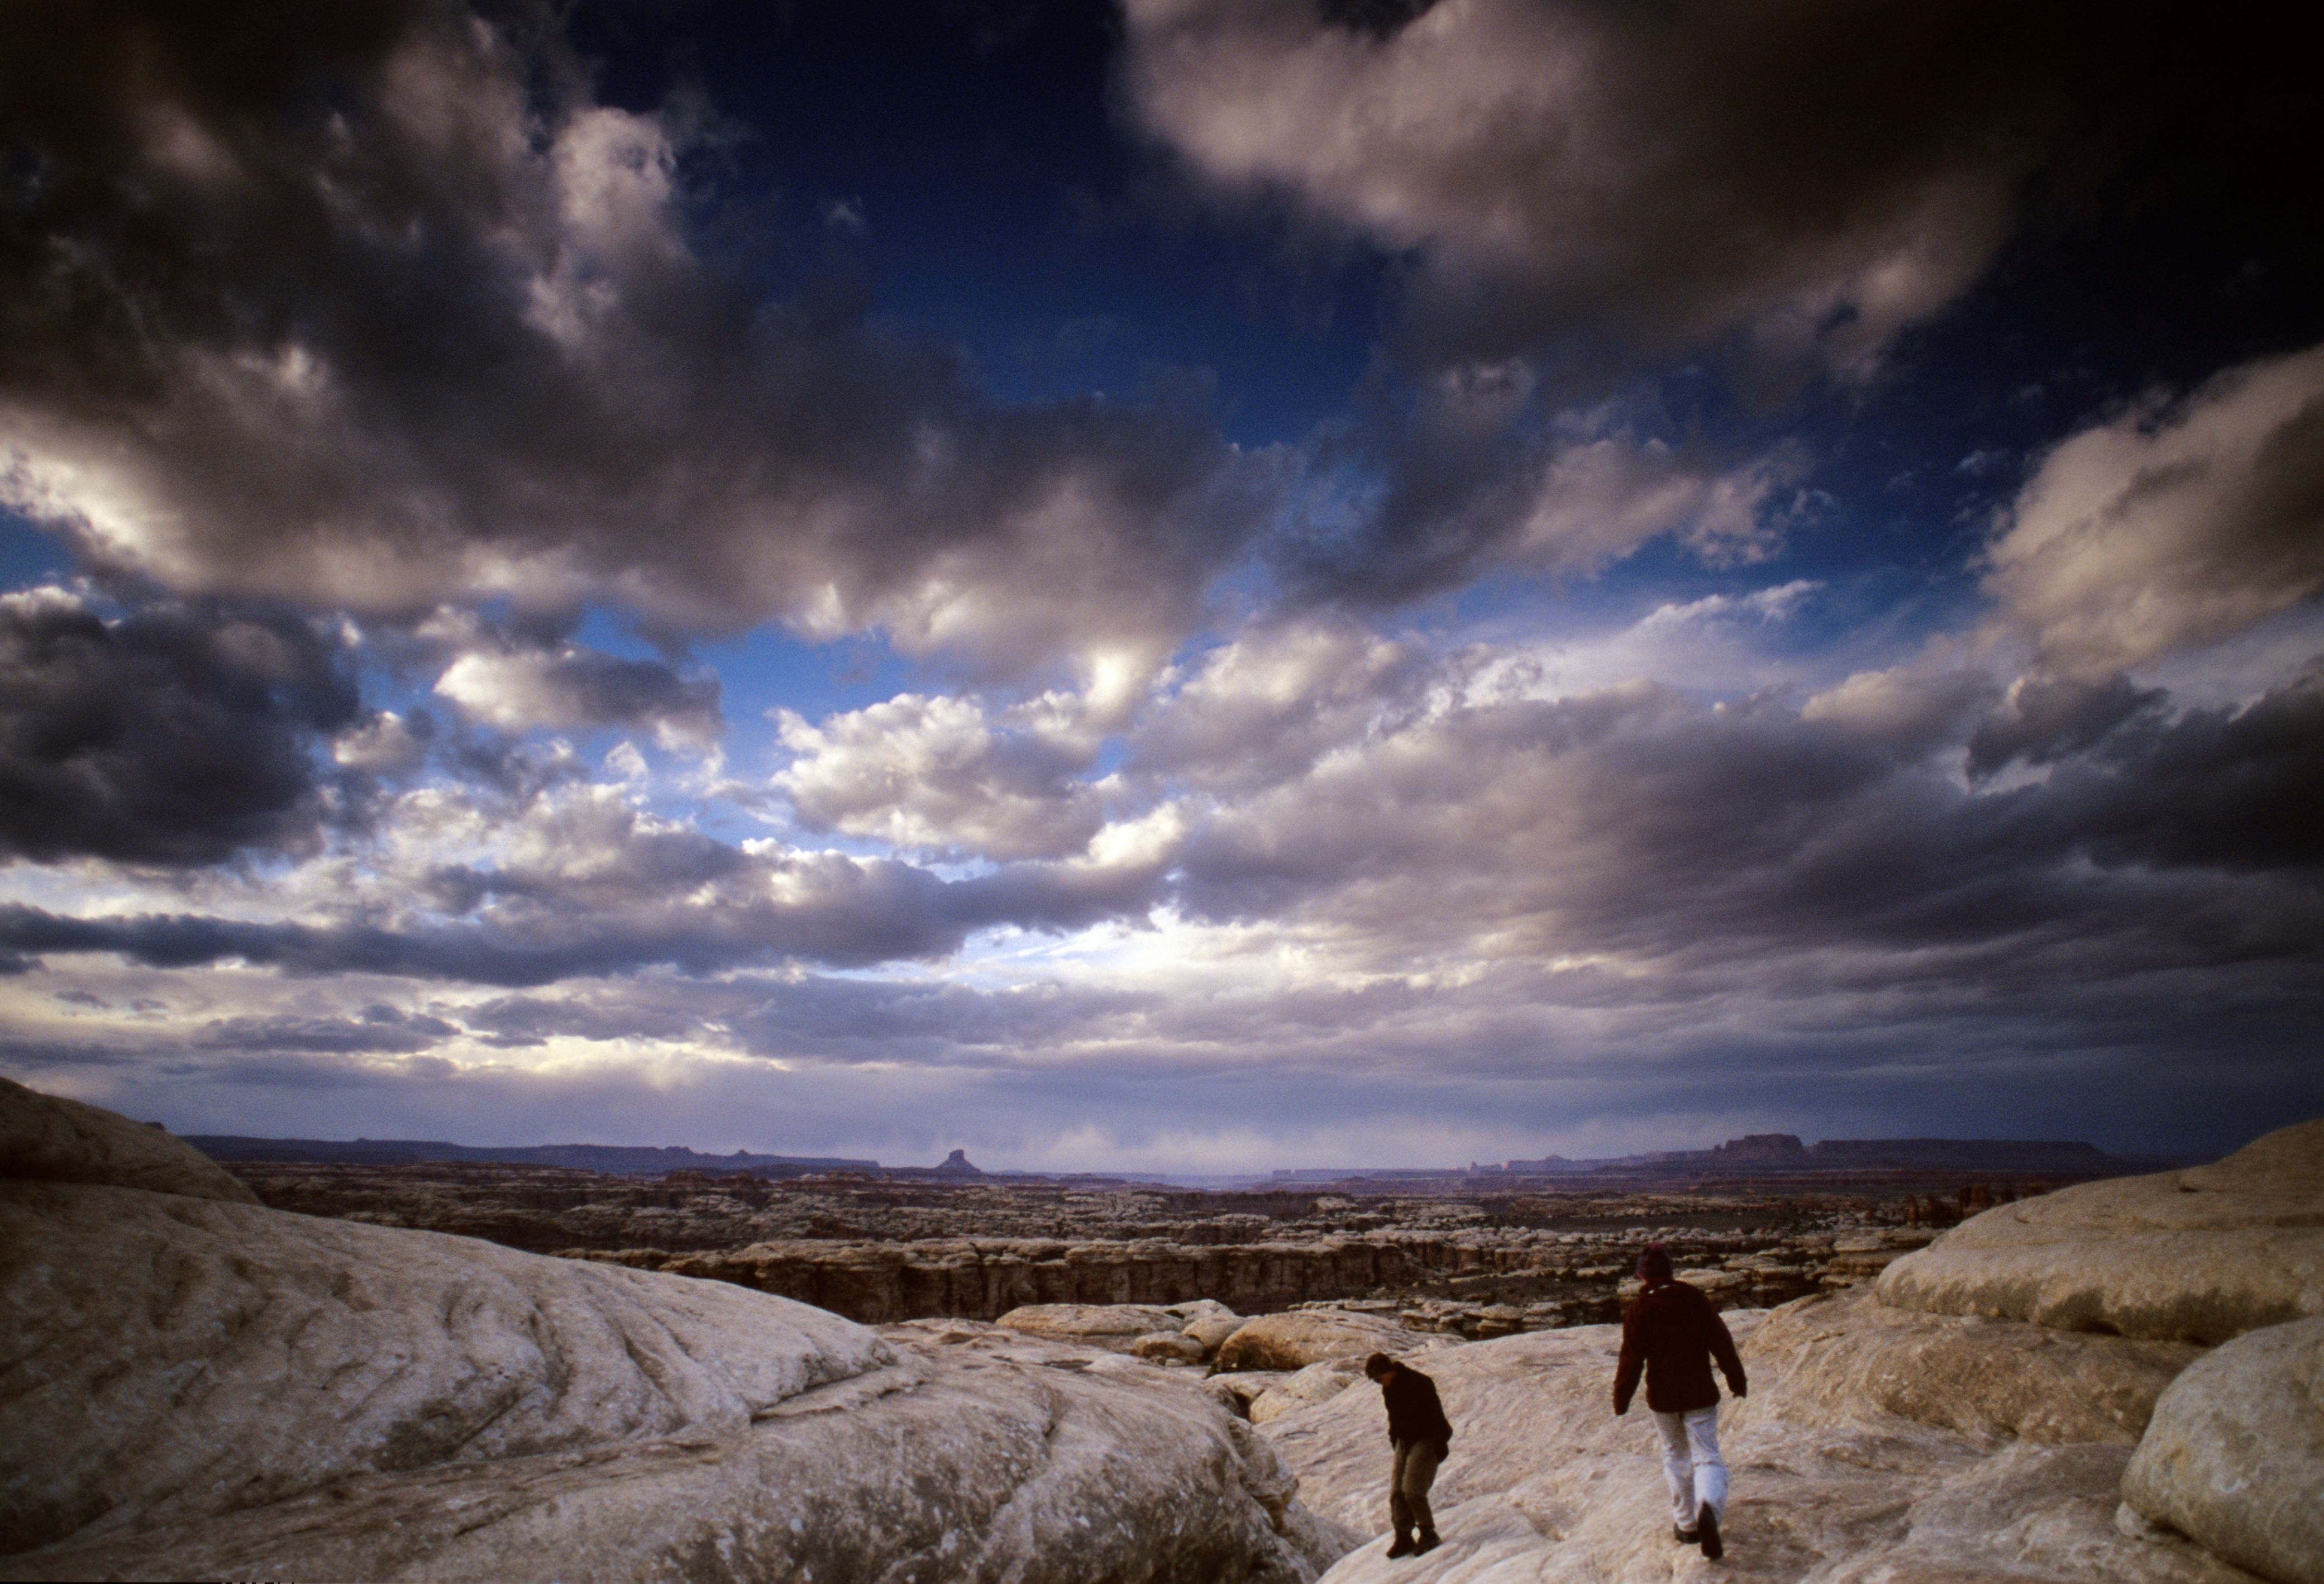 Backpacking Hikers travel through the Needles district of Canyonlands National Park in southern Utah. March 14, 2004 ��Tim Tadder/NewSport MODEL RELEASED (Photo by Tim Tadder/Corbis via Getty Images)